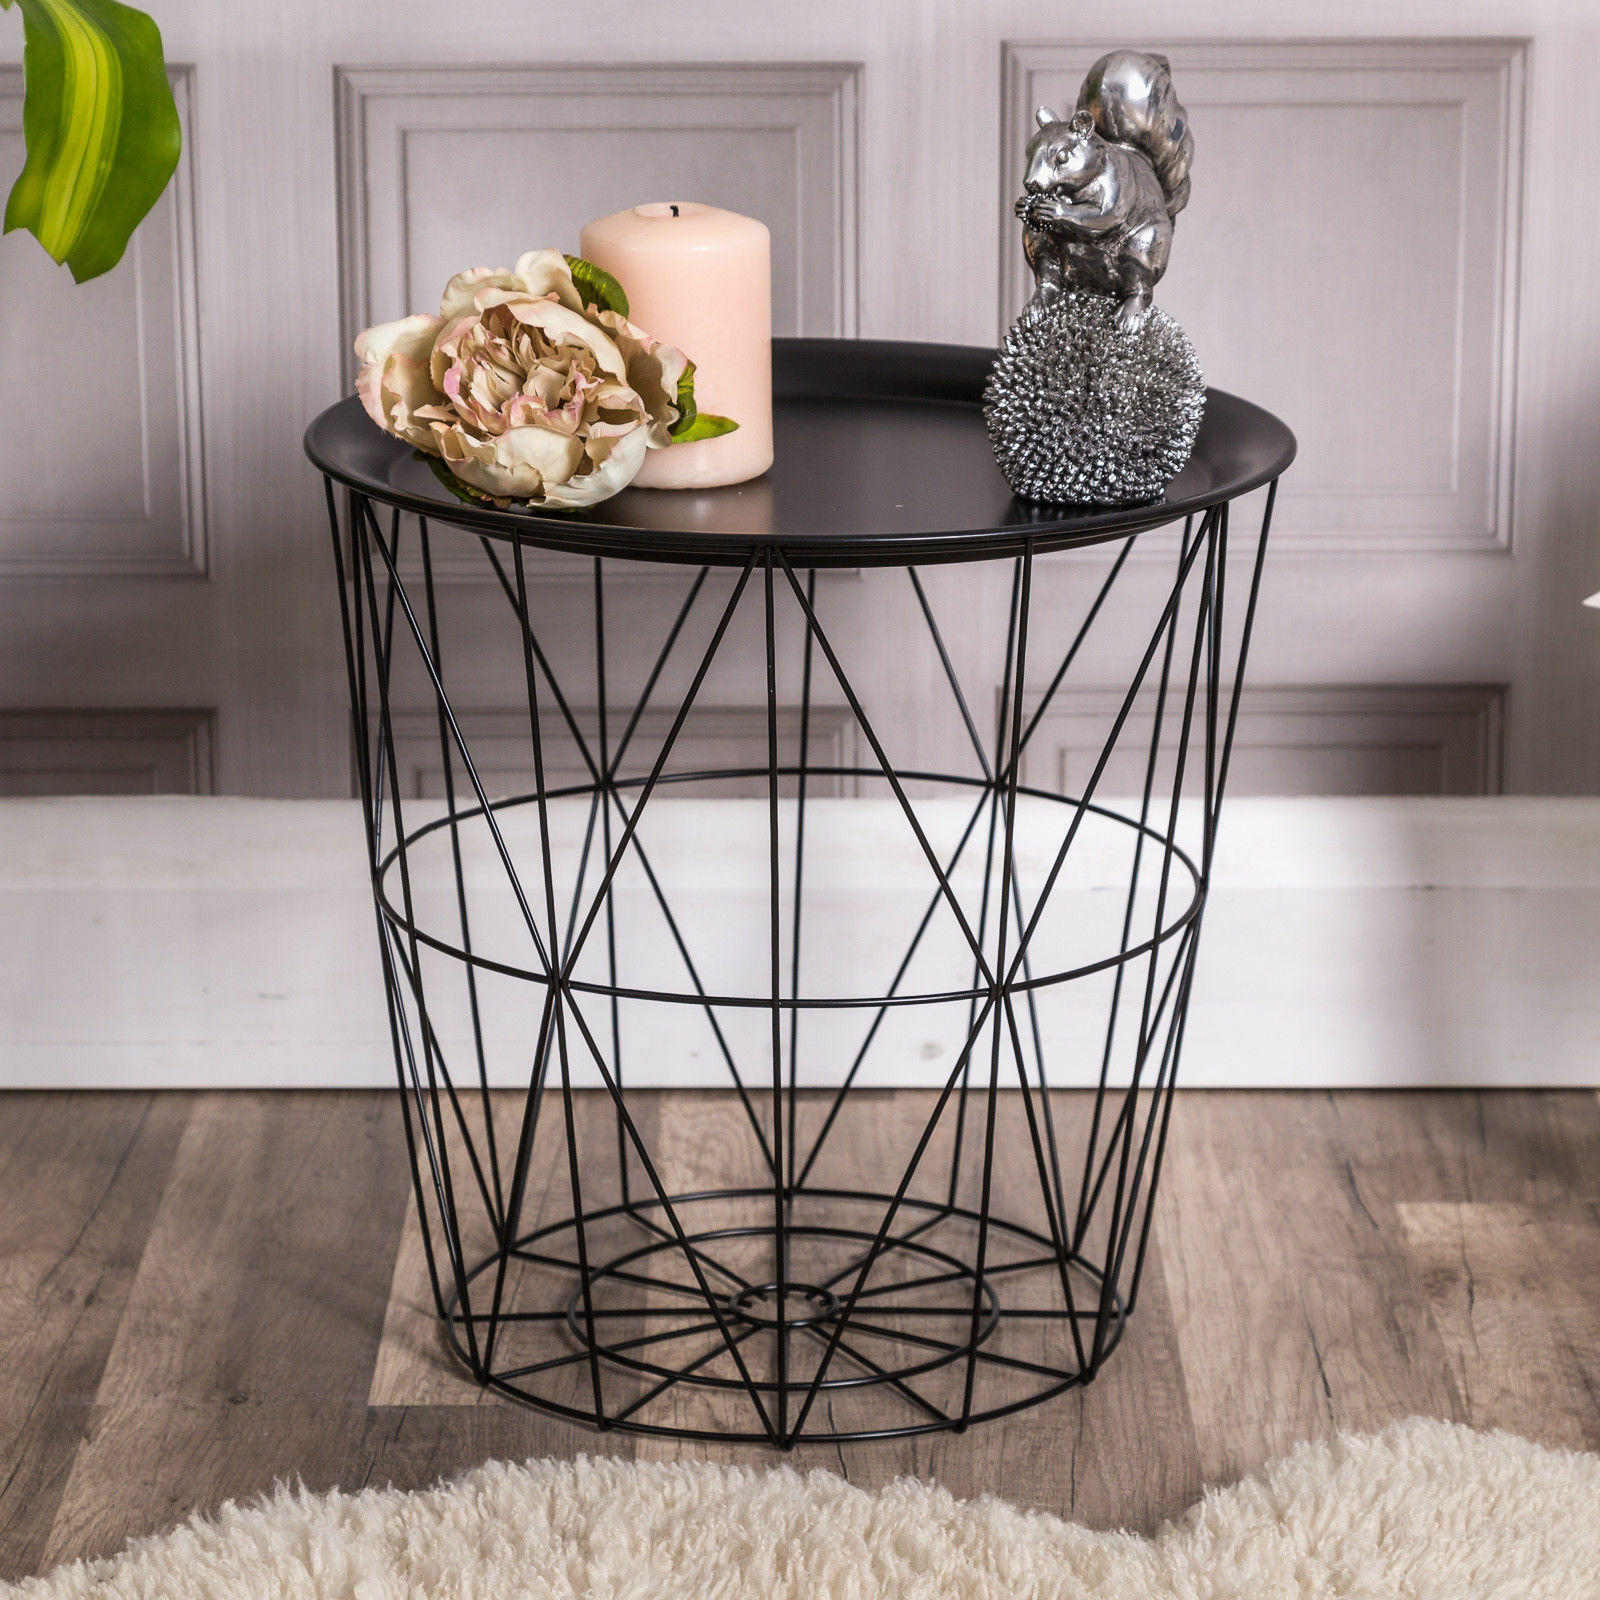 Black geometric wire side table basket tray storage occasional lamp black geometric wire side table basket tray storage occasional lamp contemporary 1 of 2only 1 available keyboard keysfo Choice Image